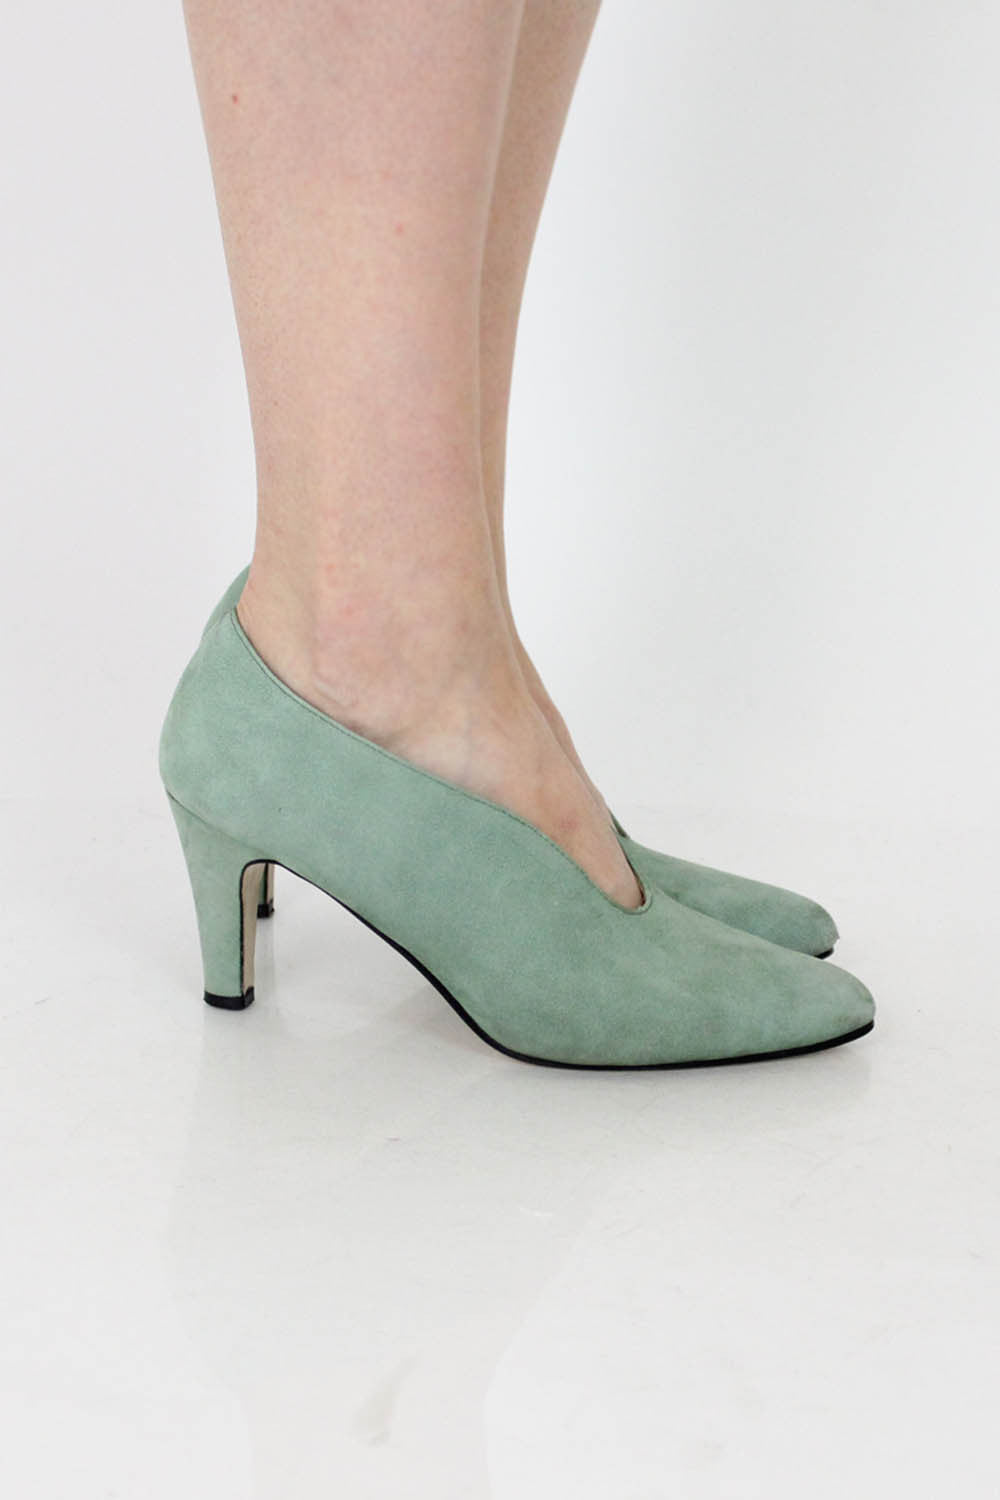 Seafoam Notched Heels 7.5